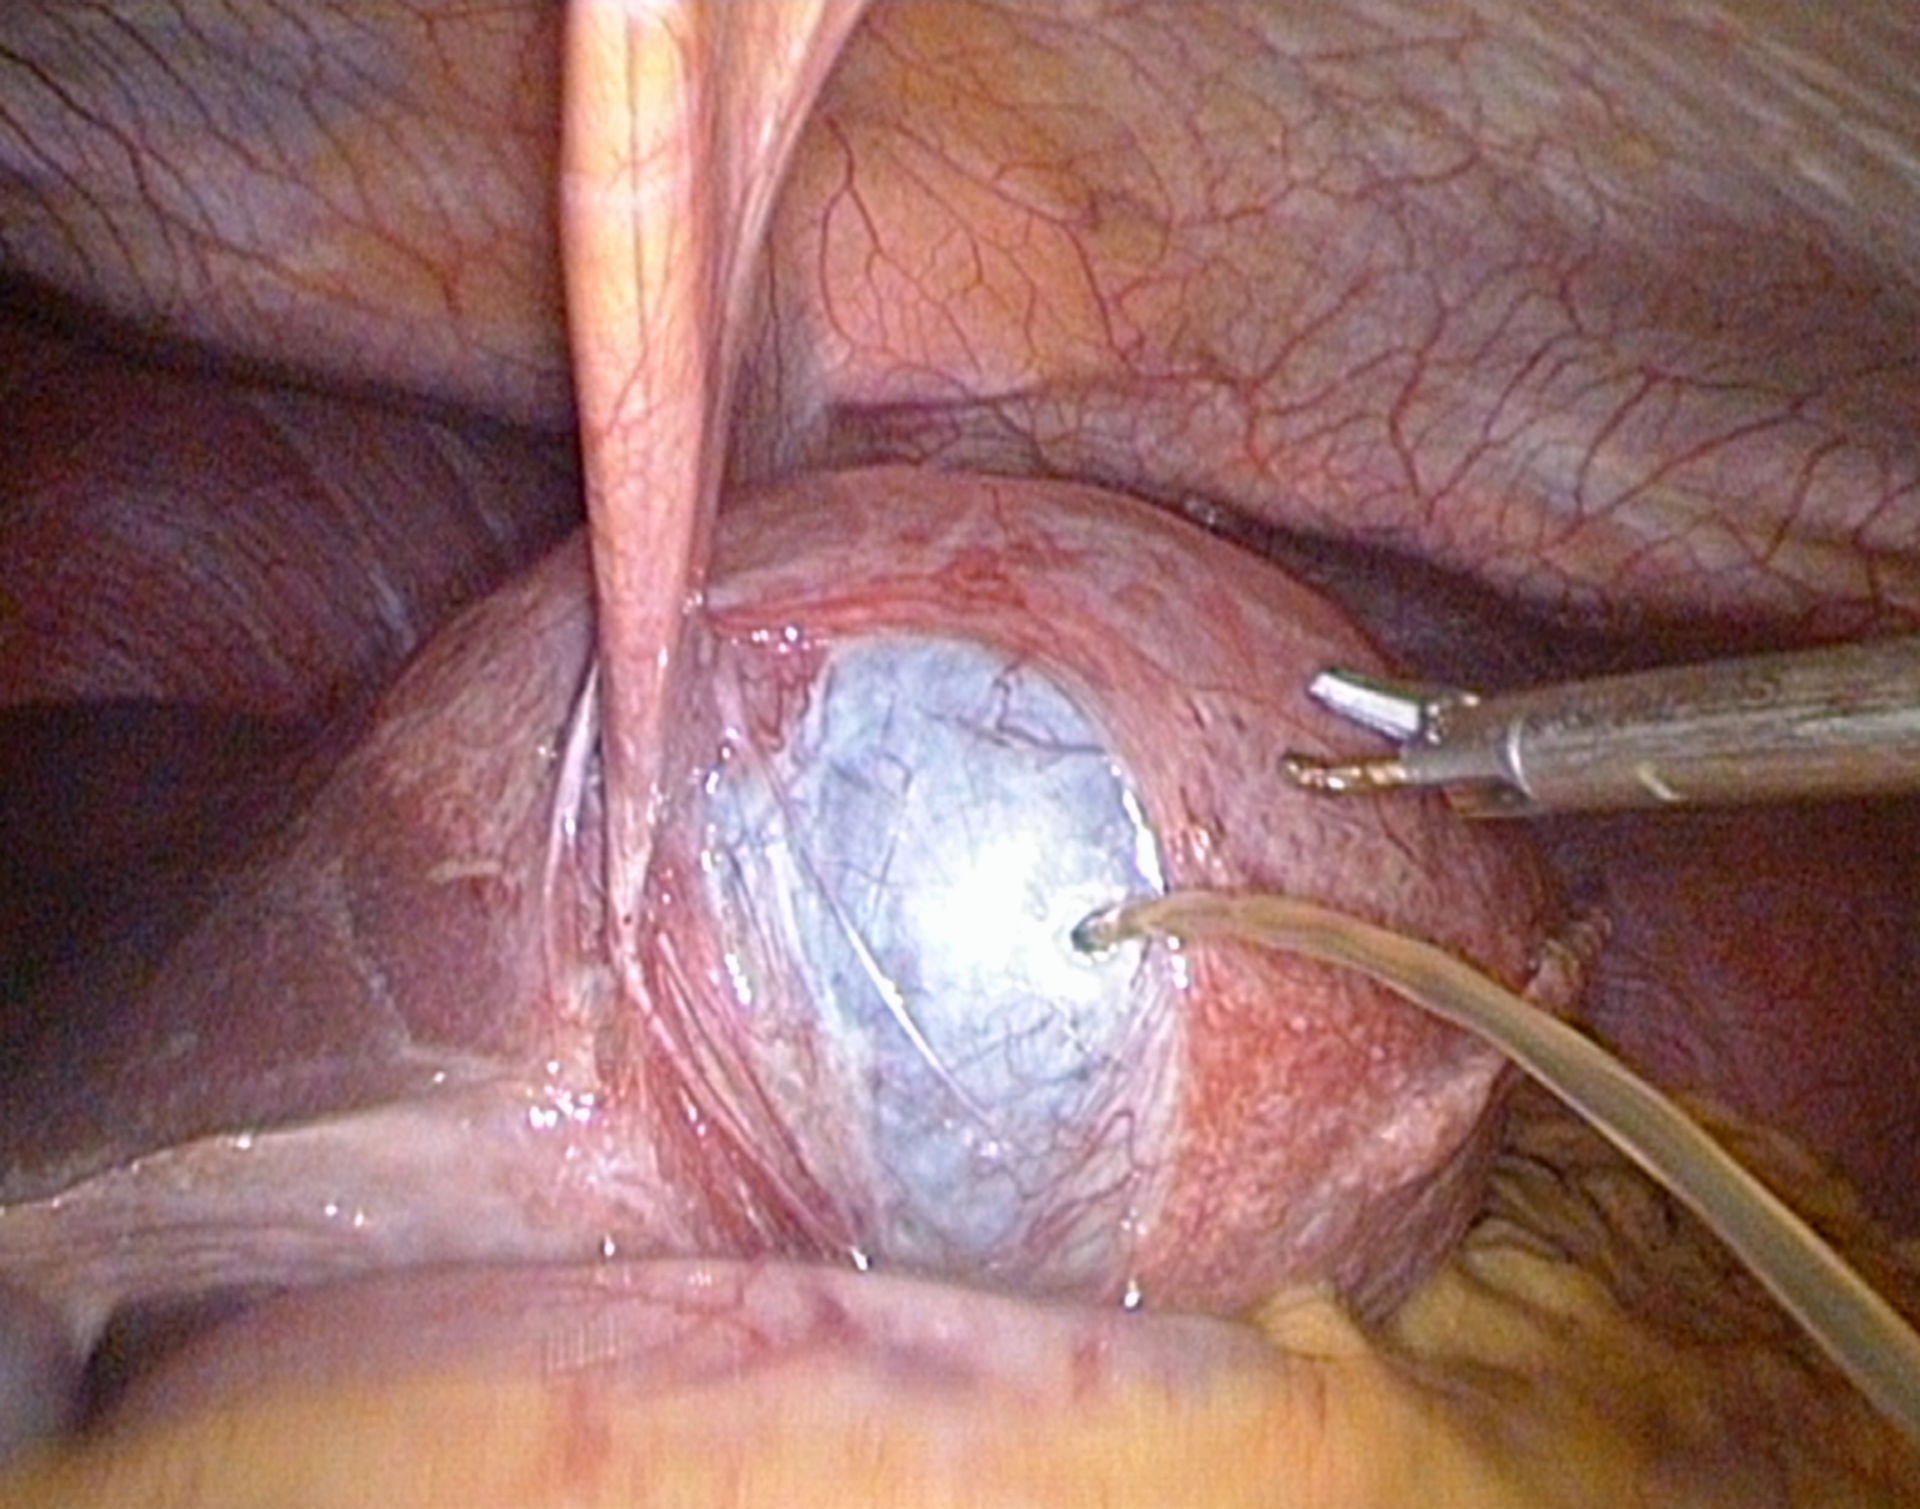 Laparoscopic liver cyst-opening and suctioning